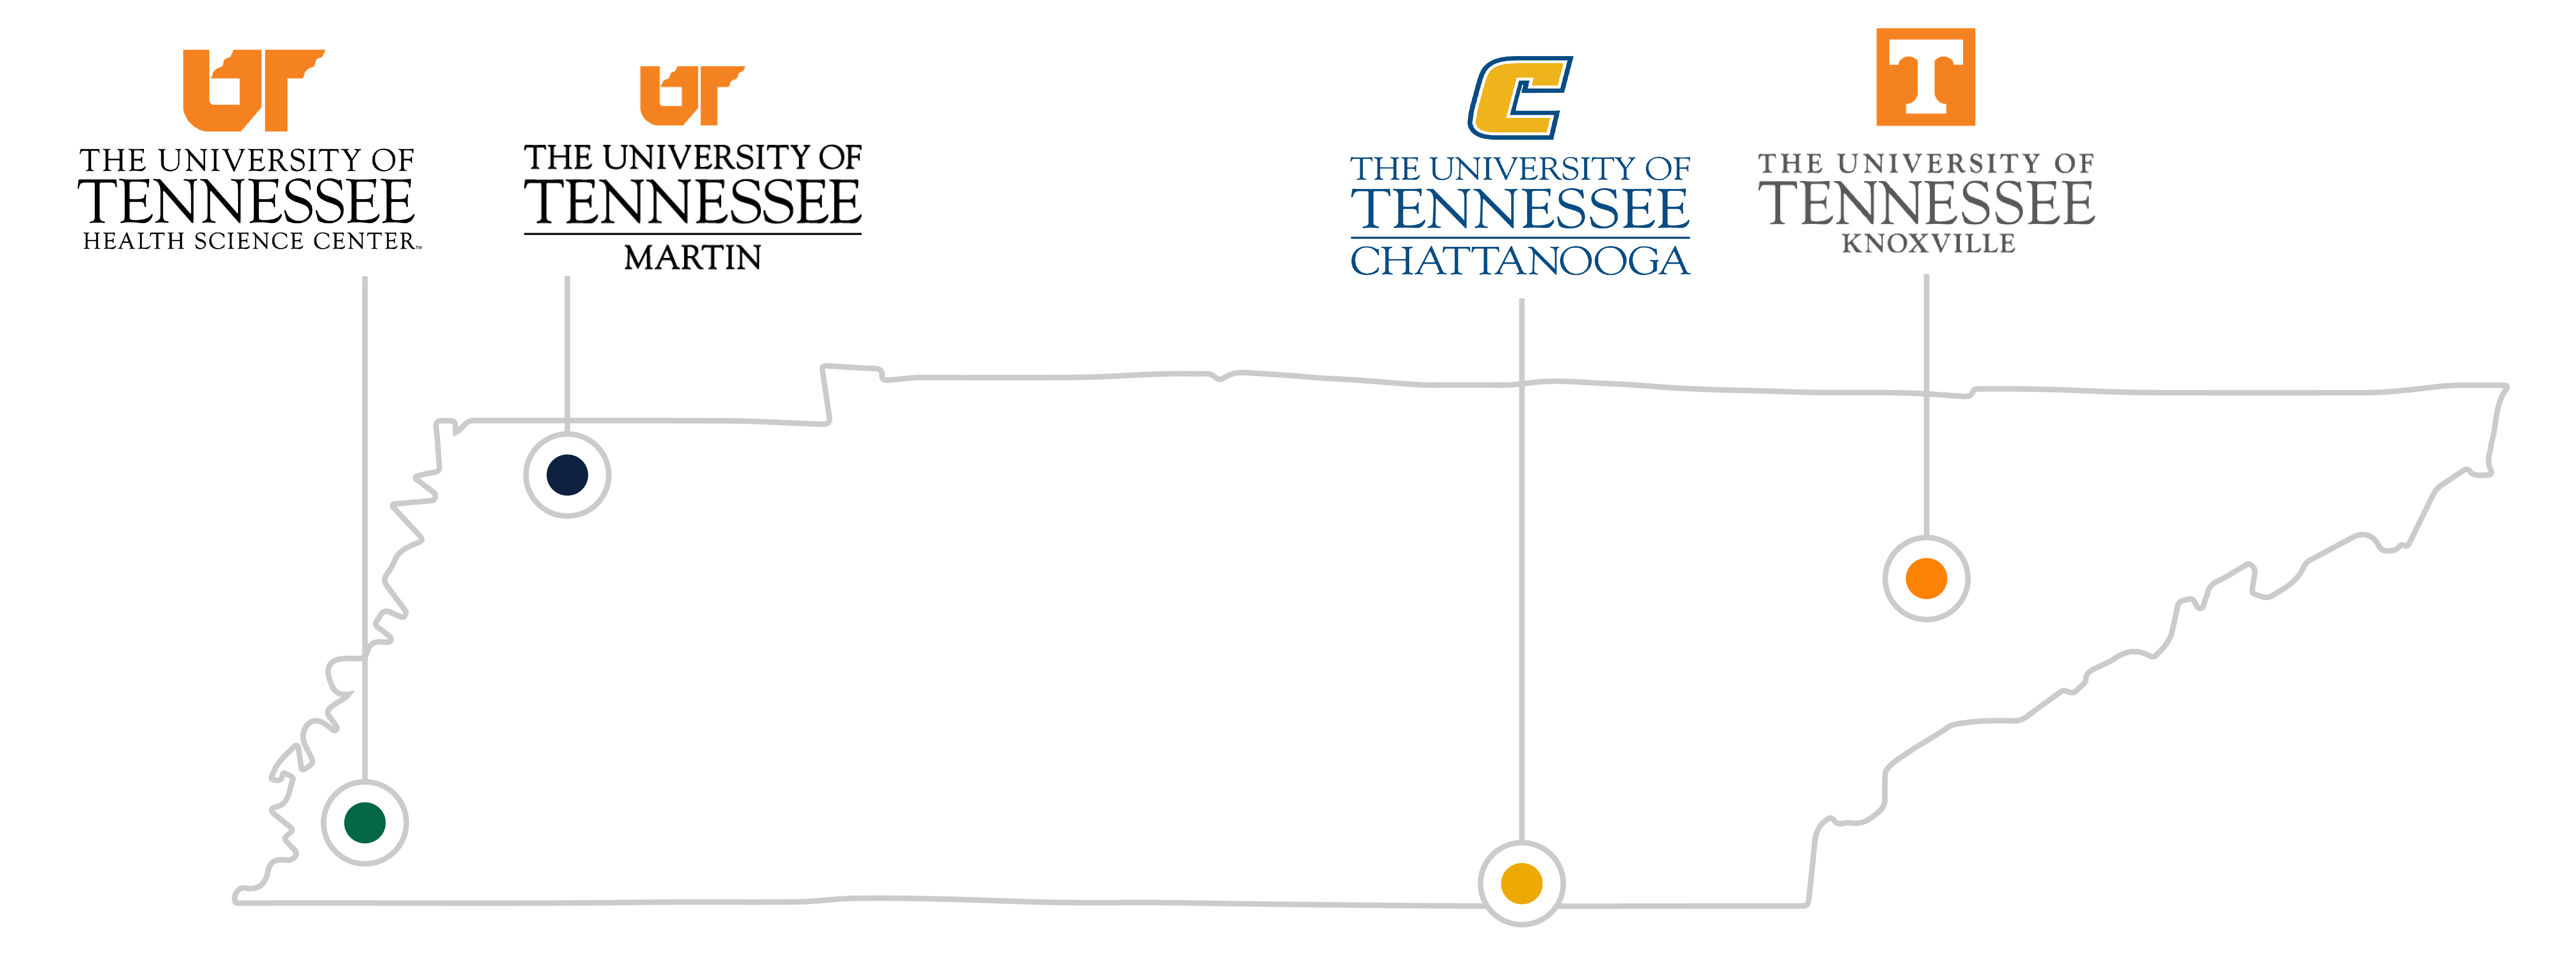 statewide-campus-map-01